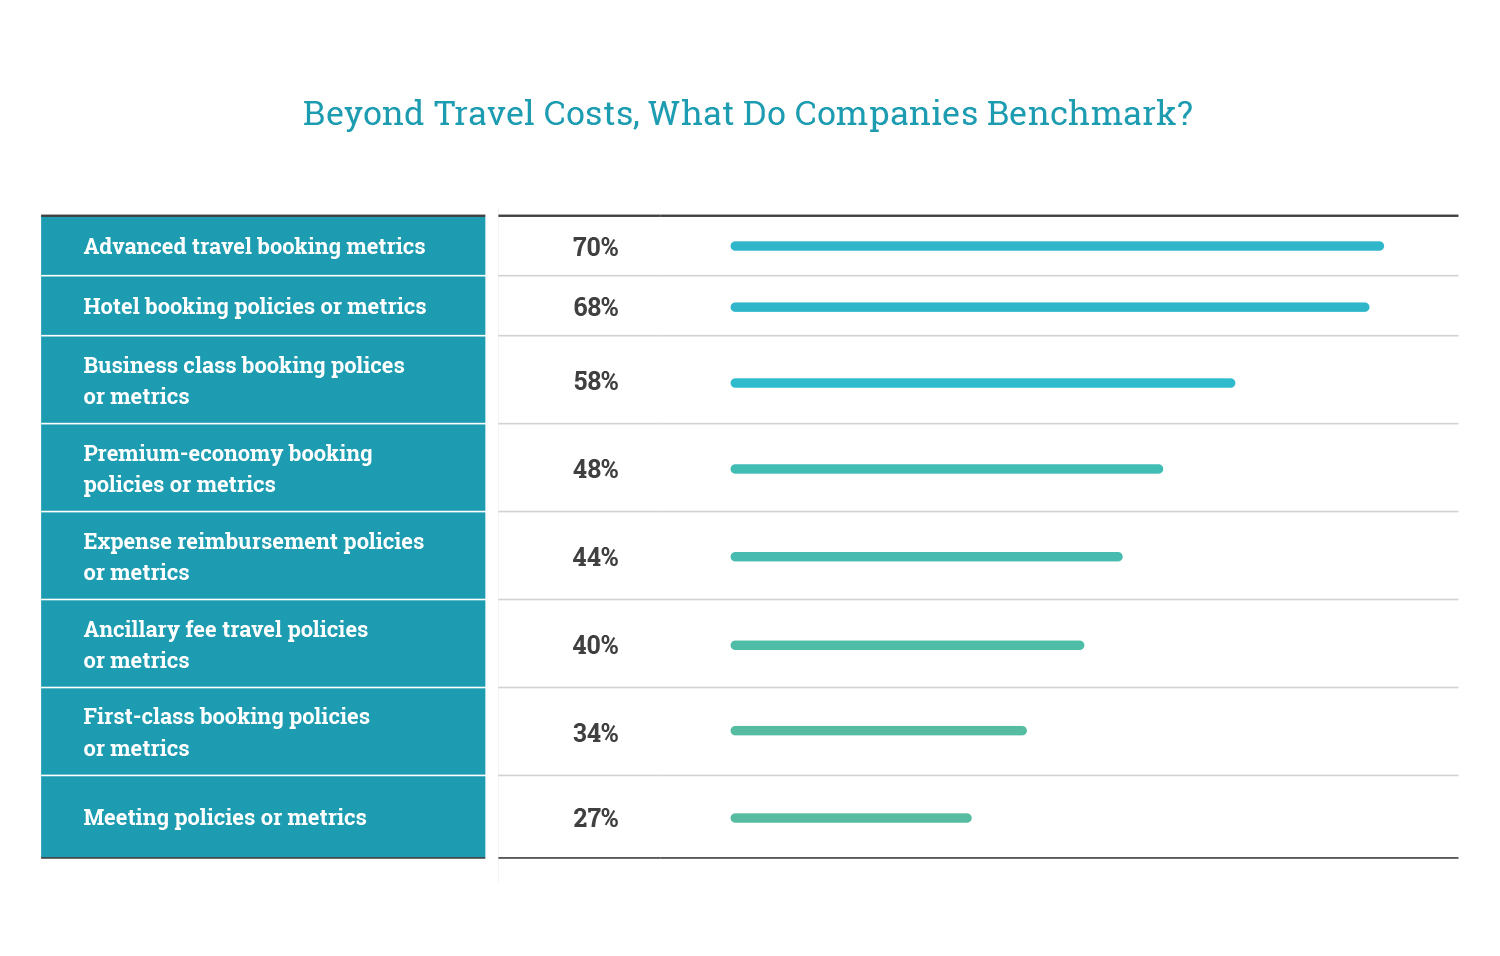 Beyond Travel Costs